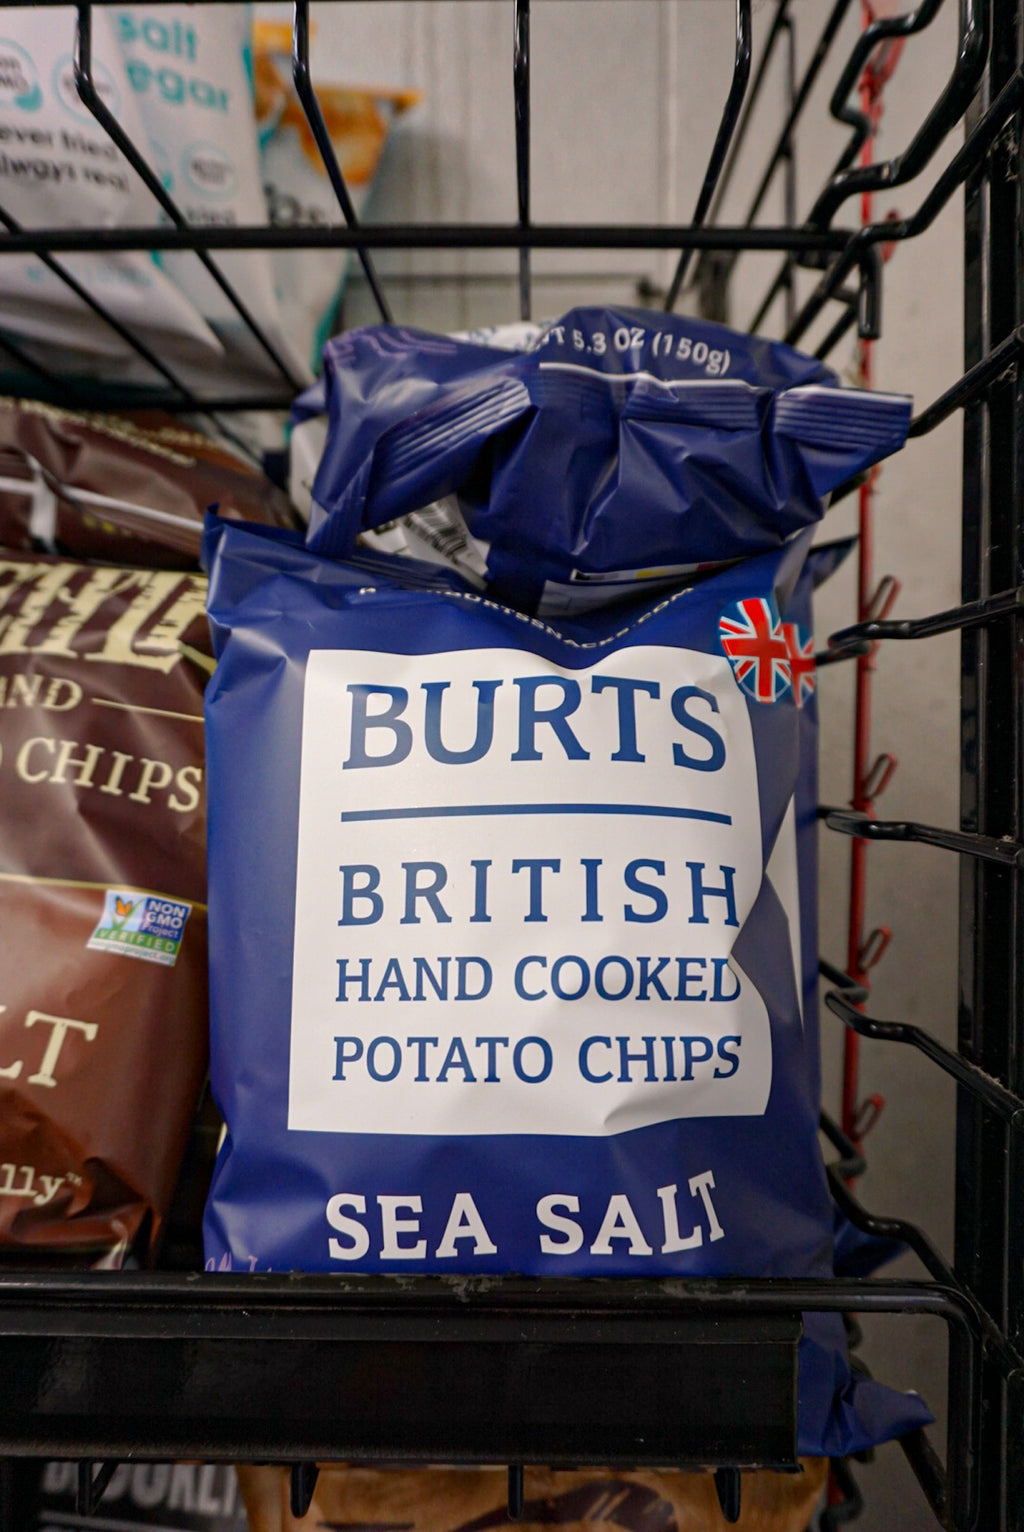 Burts British Hand Cooked Potato Chips Sea Salt - Delivery